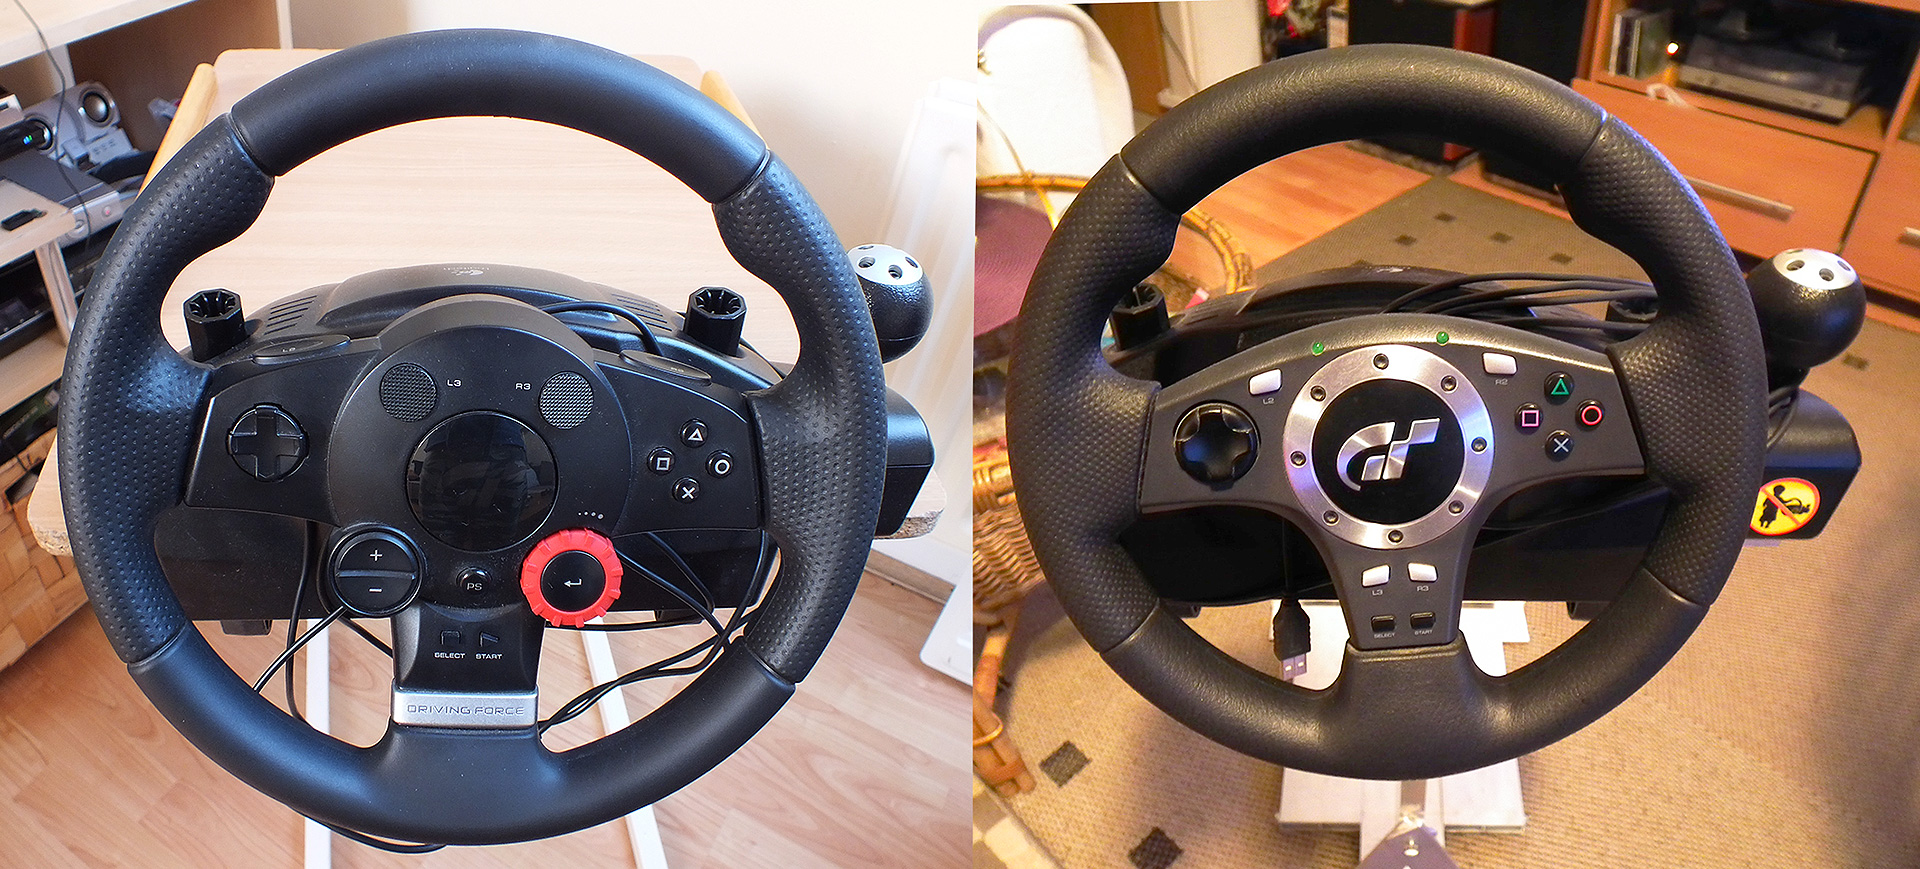 Driving Force Pro vs Driving Force GT